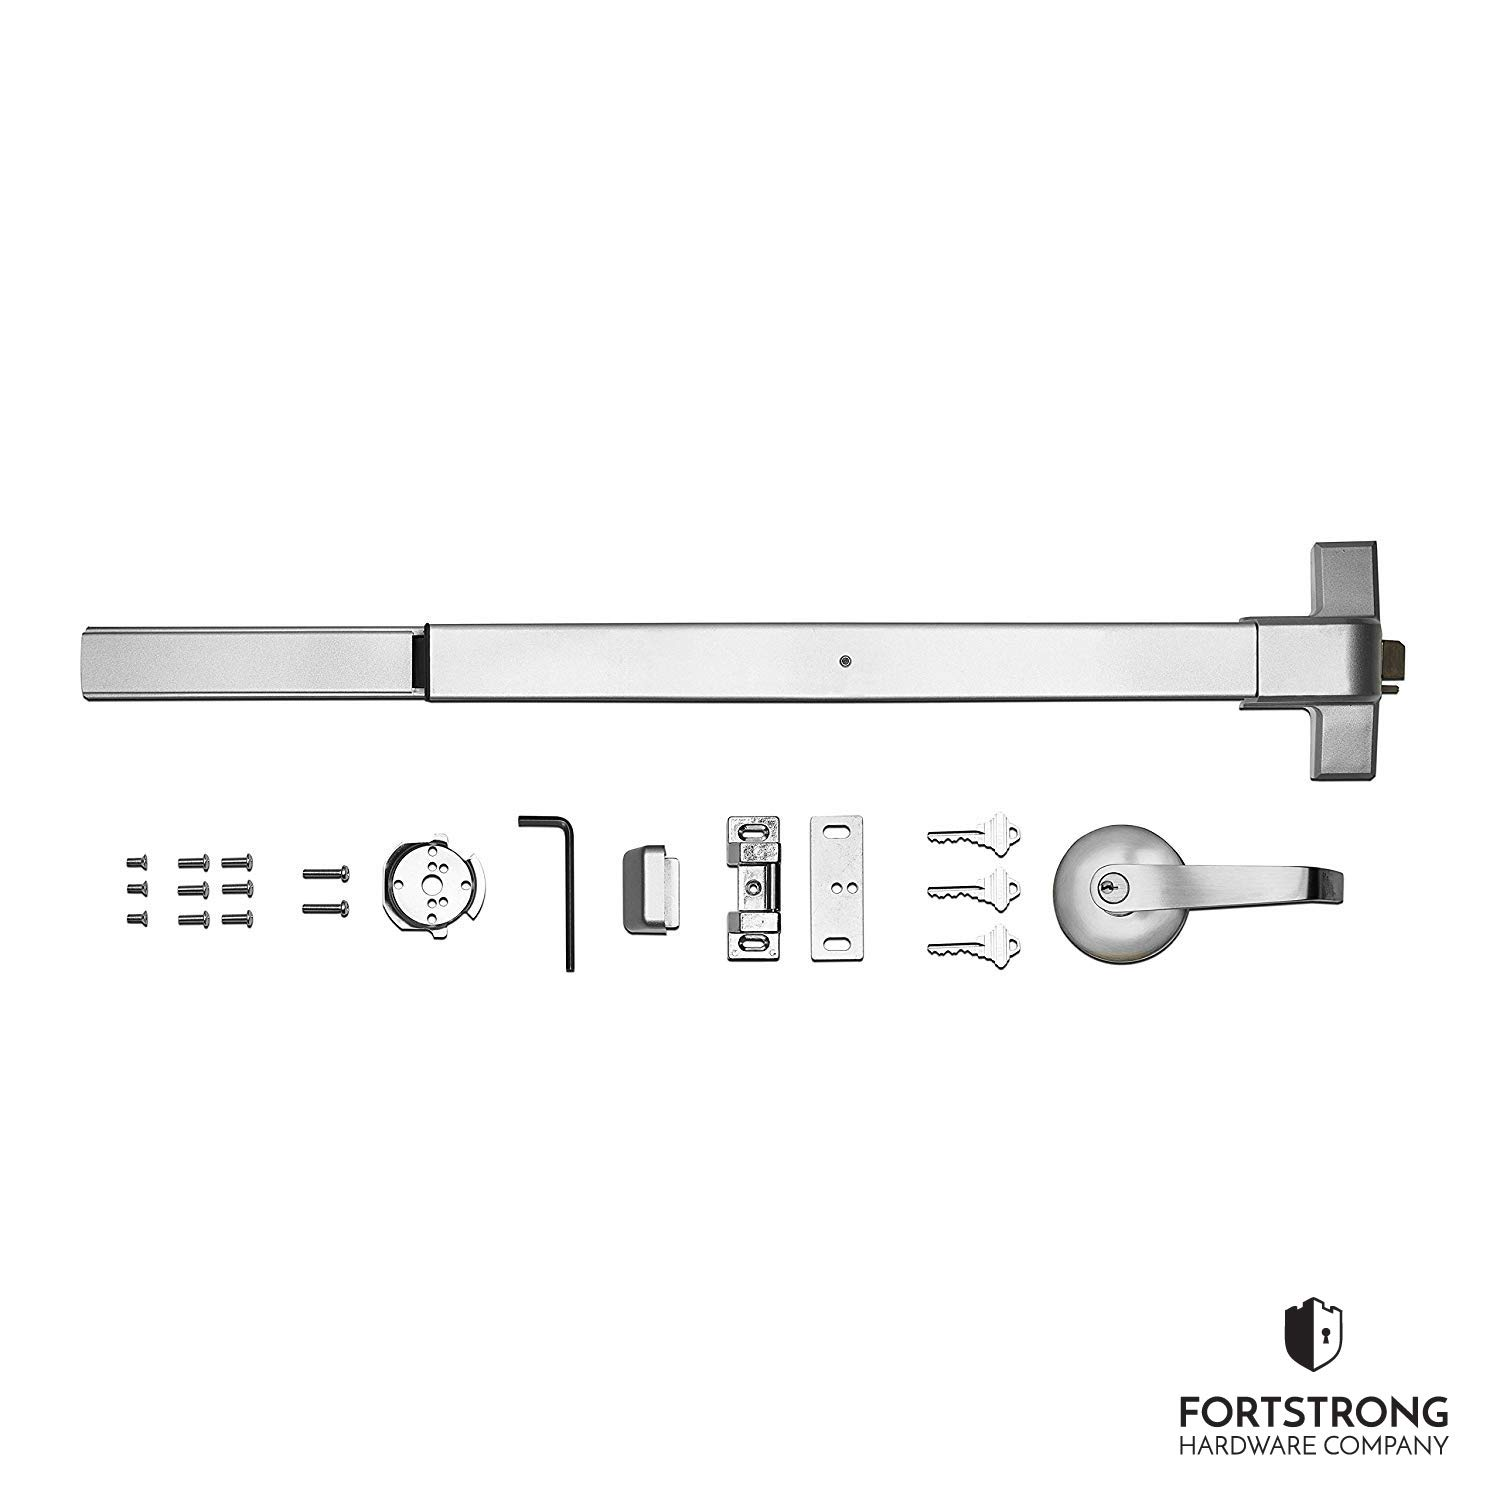 Panic Bar Exit Device - Push Bar for Exit Doors & Exit Lever with Key - UL Listed - Aluminium Silver Finish - Fitting Instructions by Fortstrong Hardware Company (Image #7)